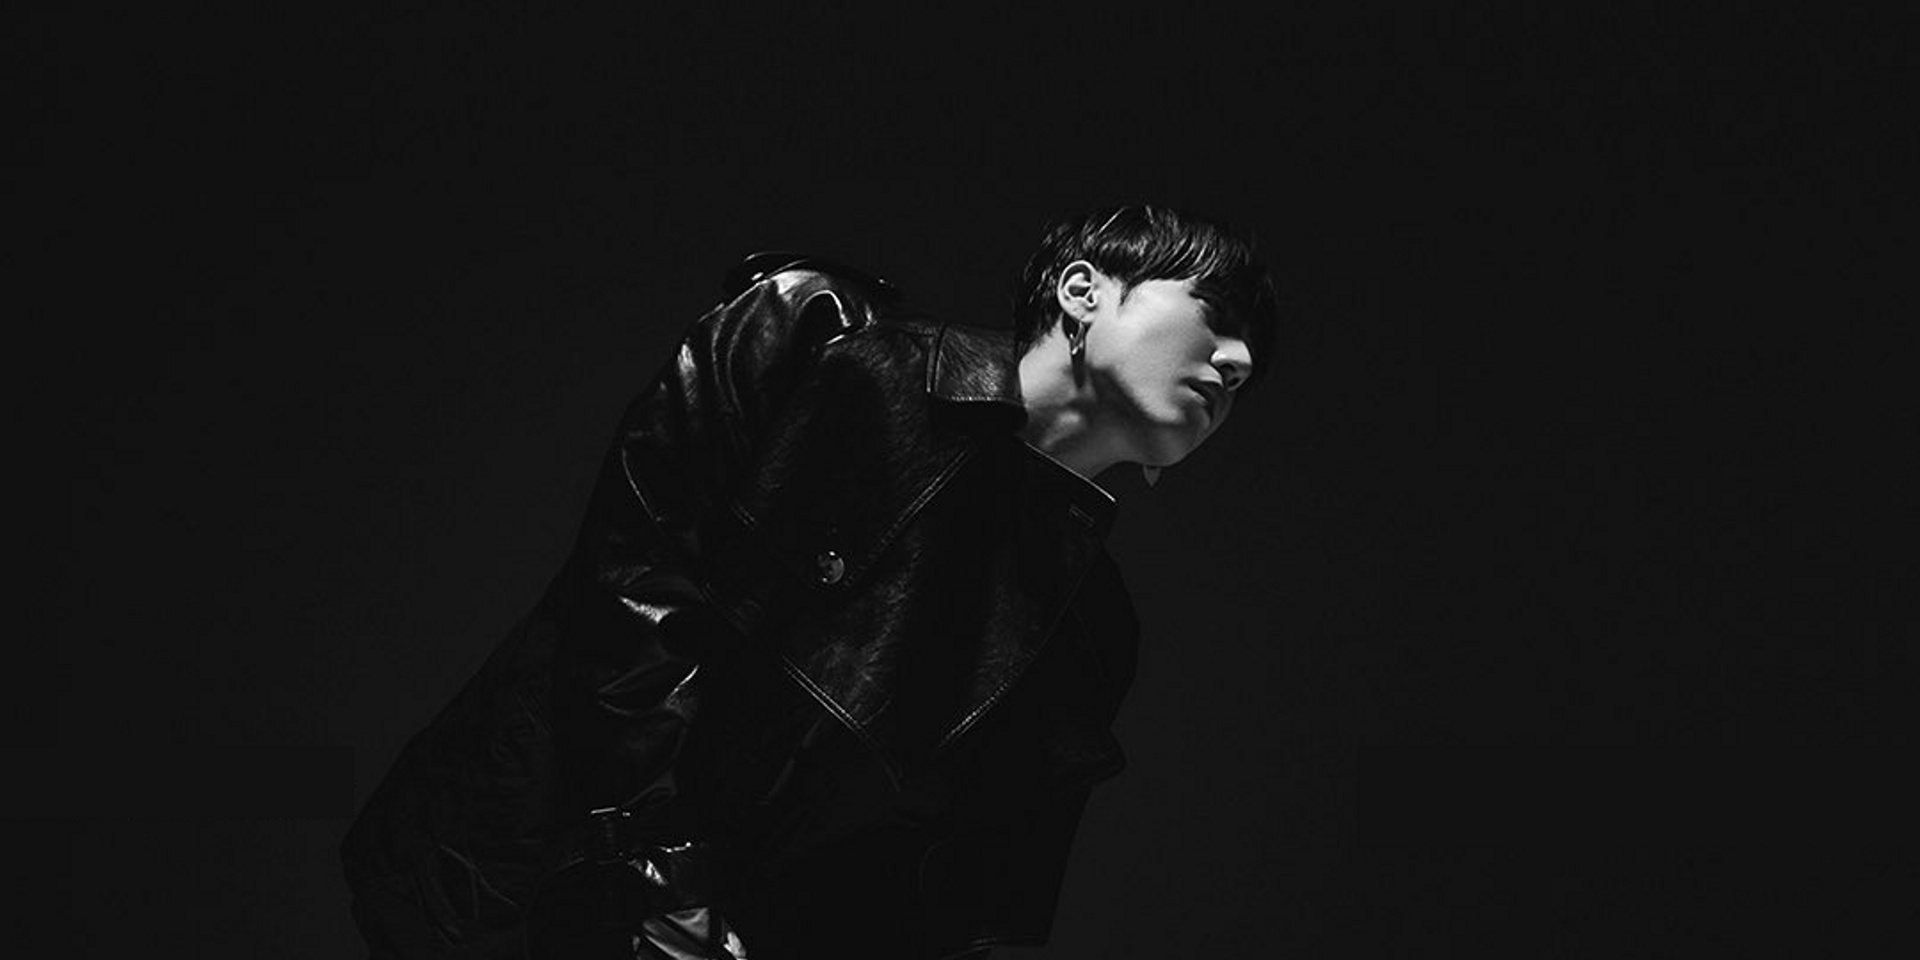 GOT7's Yugyeom previews debut EP with new single 'I Want U Around'